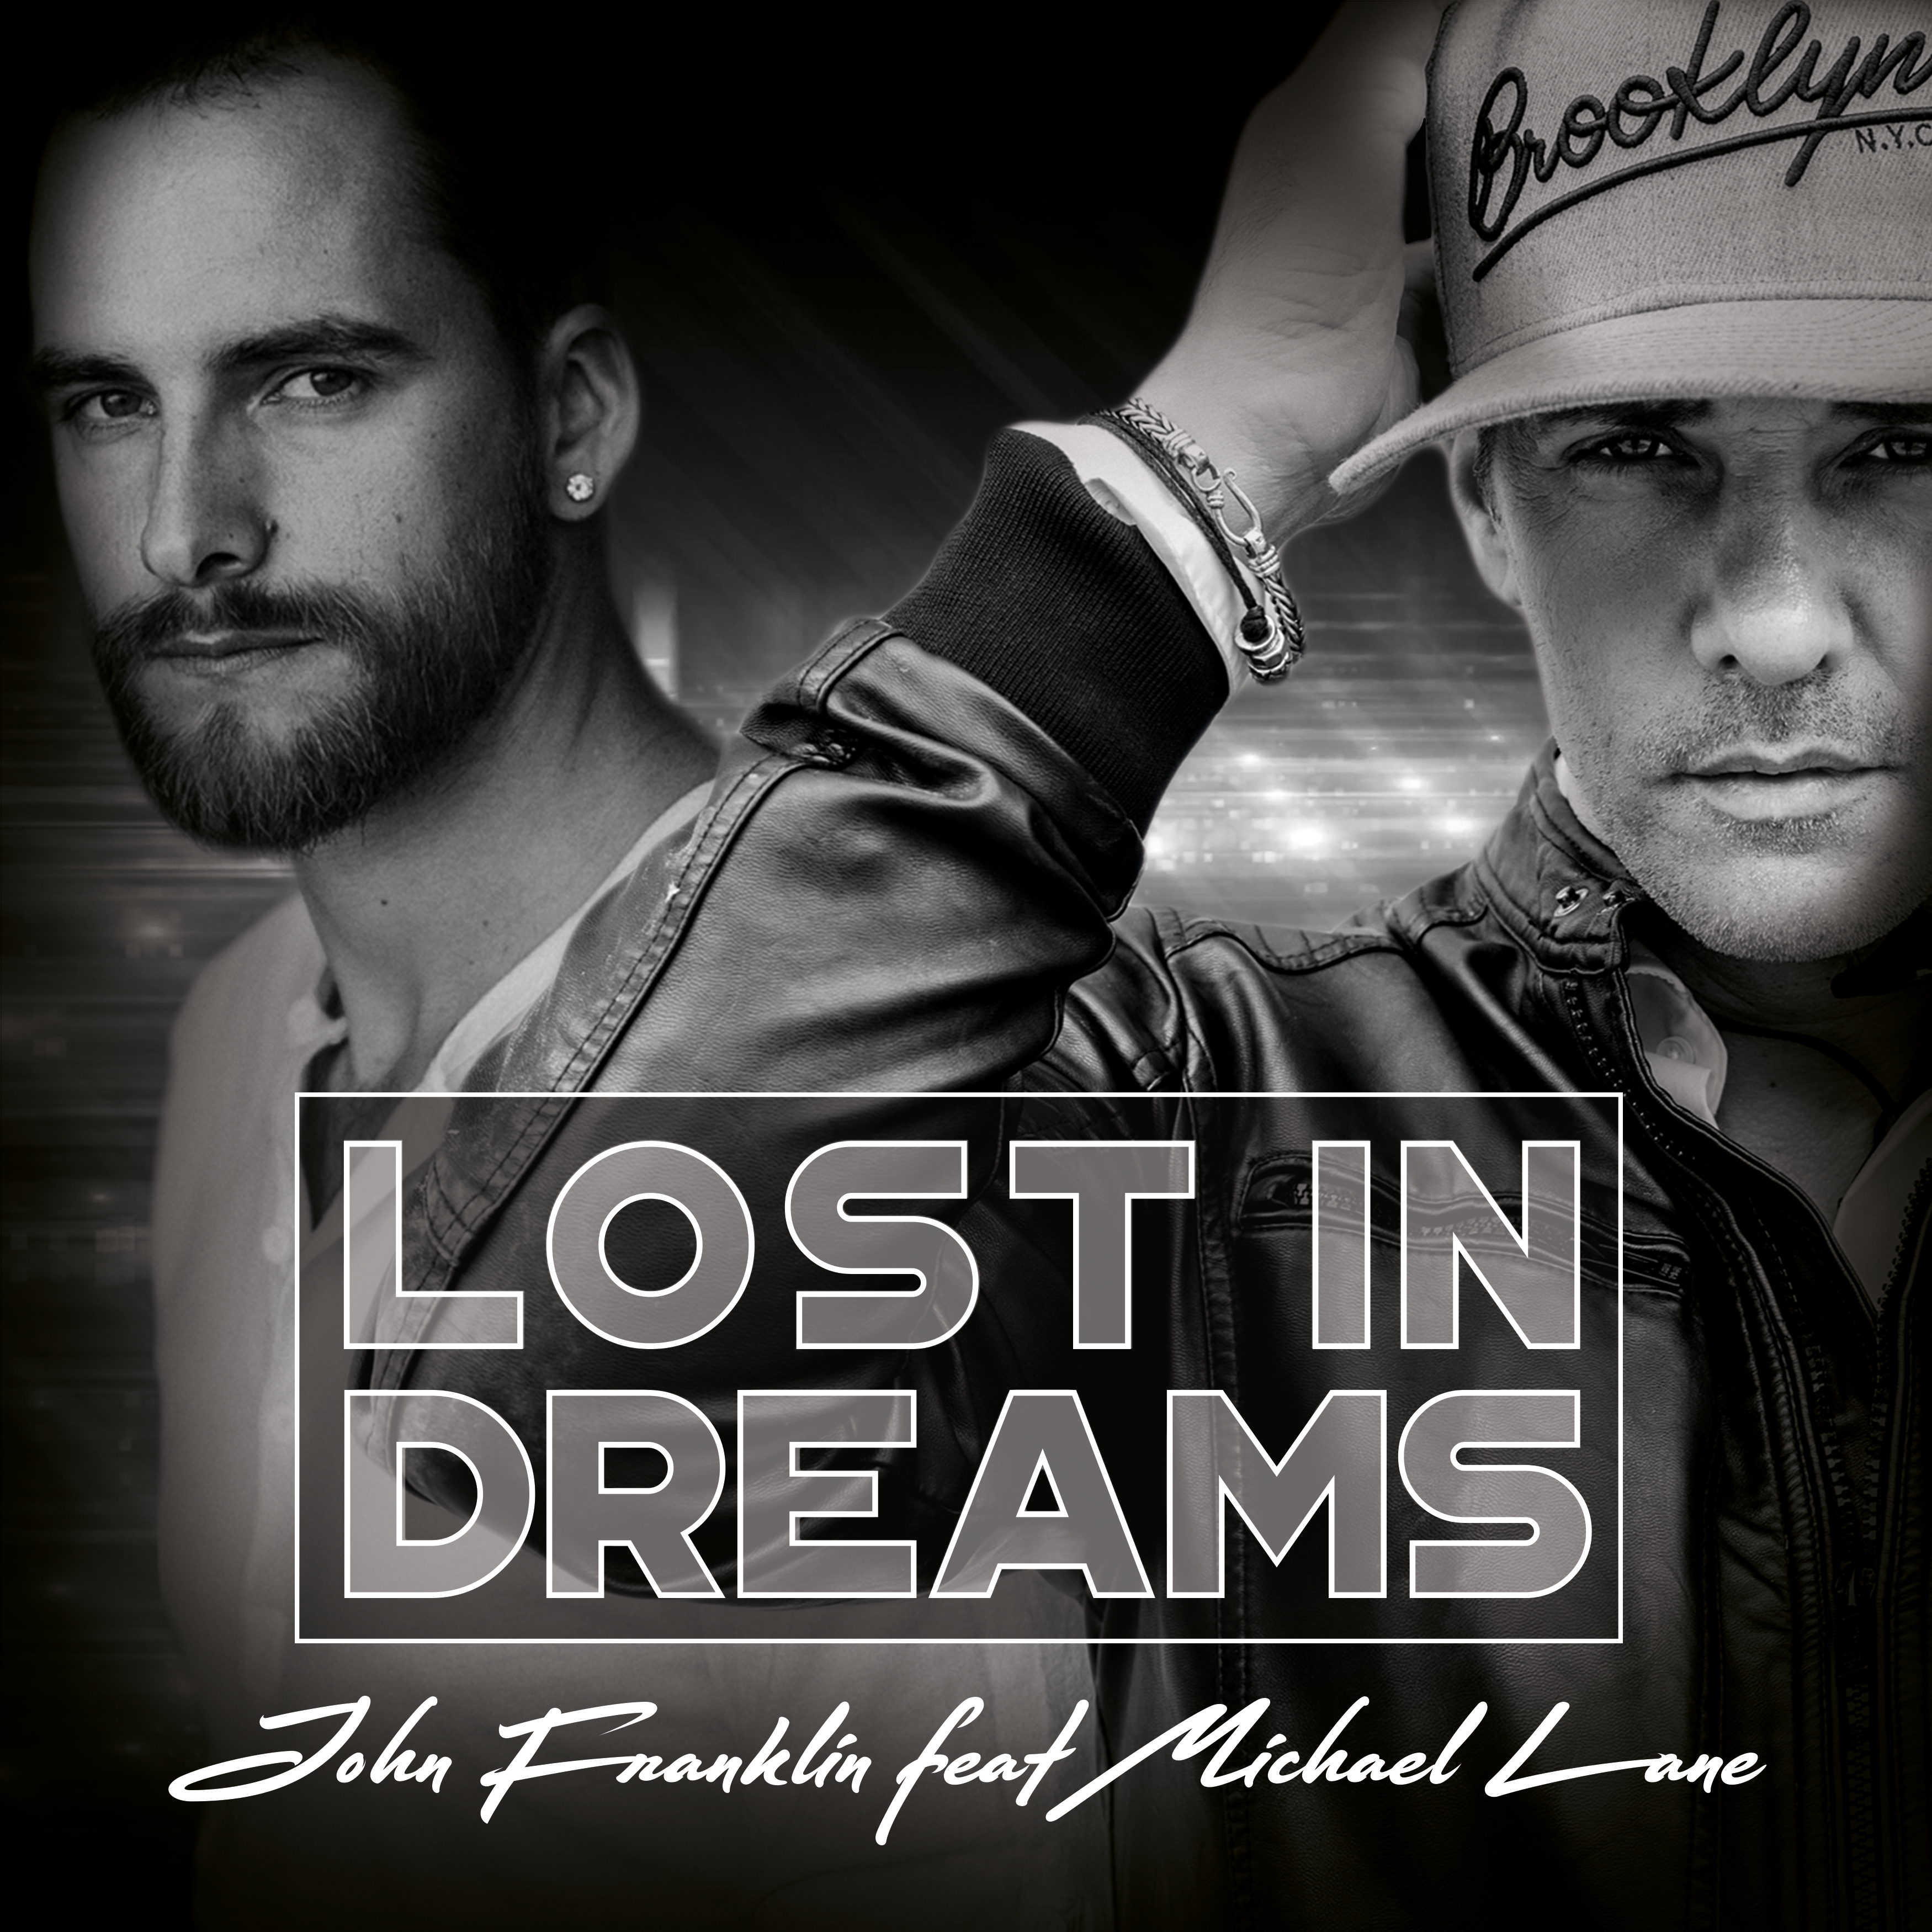 JOHN FRANKLIN FEAT. MICHAEL LANE-Lost In Dreams